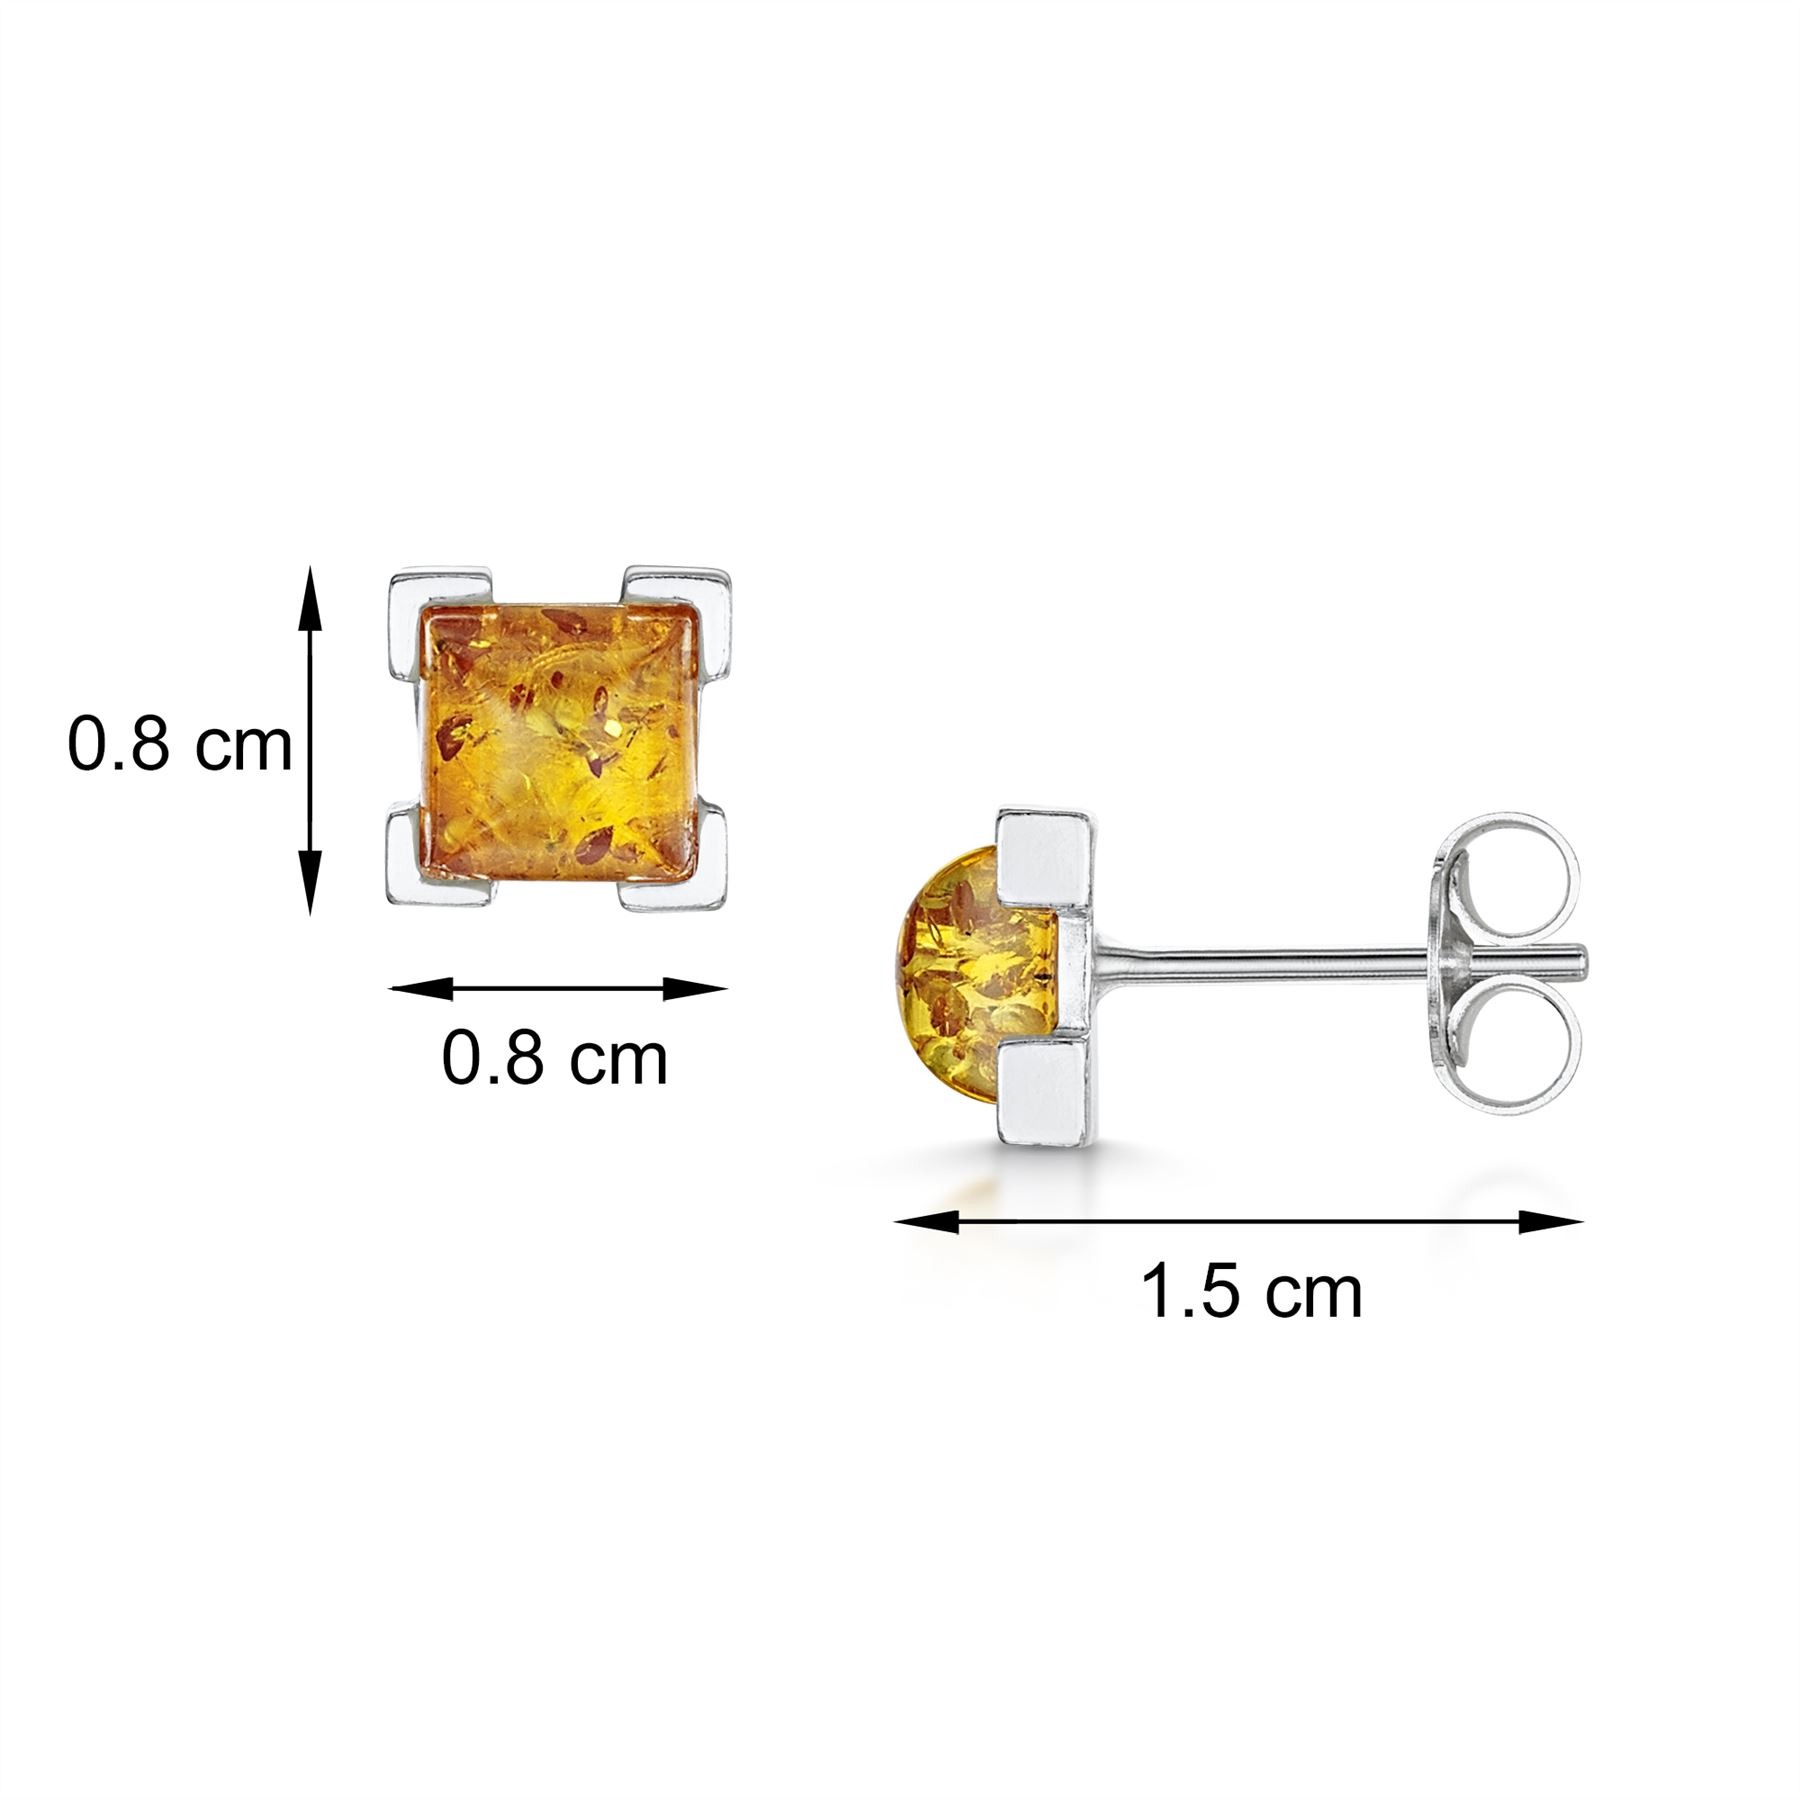 Amberta-Genuine-925-Sterling-Silver-Earrings-with-Natural-Baltic-Amber-Gemstone thumbnail 74